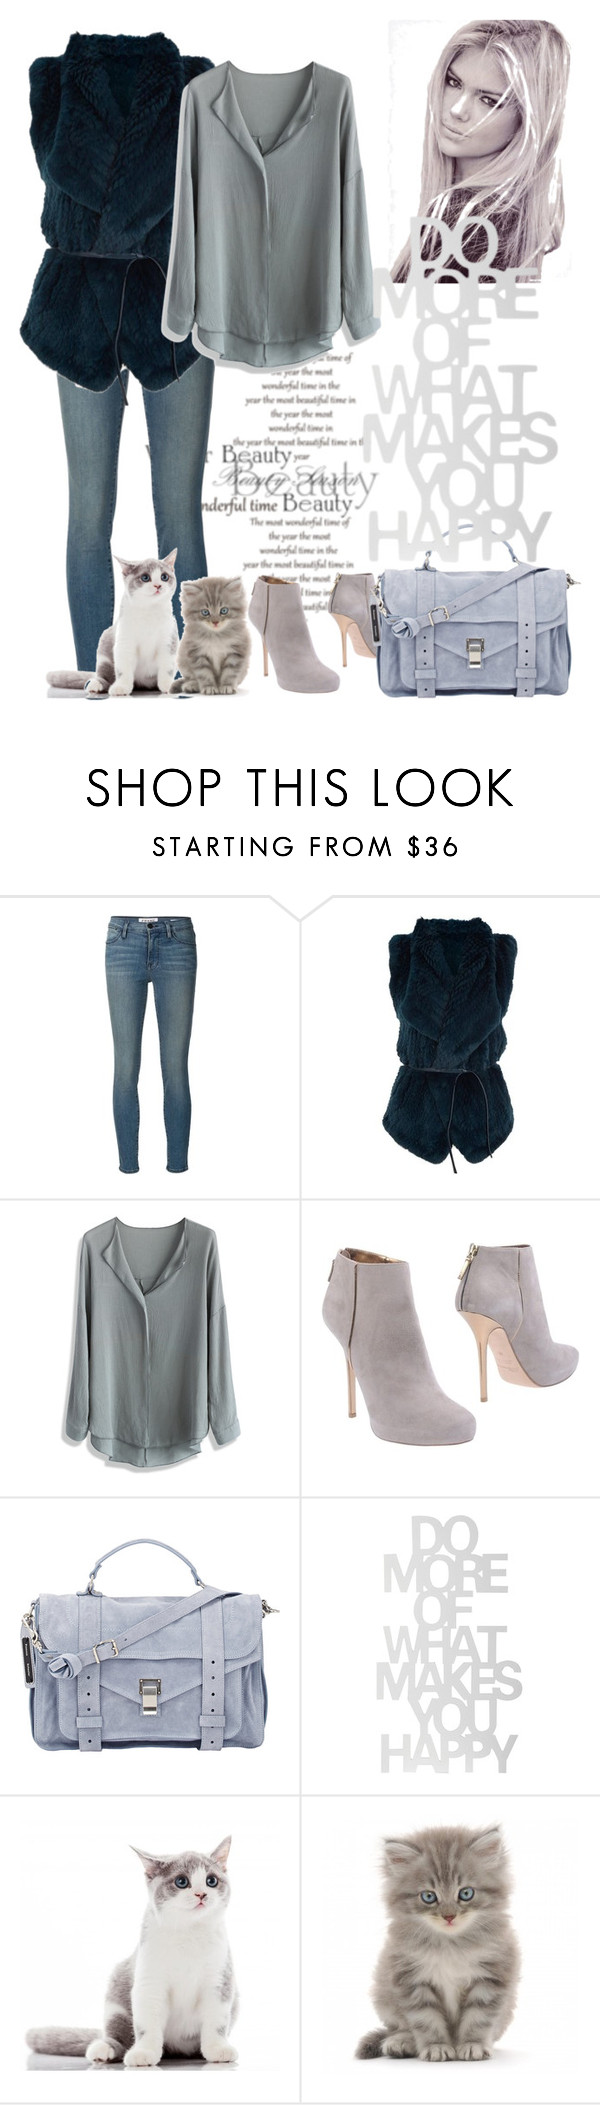 """grey and blue"" by chiara-ix74 ❤ liked on Polyvore featuring Frame Denim, Vince, Chicwish, Blumarine, Proenza Schouler, women's clothing, women, female, woman and misses"